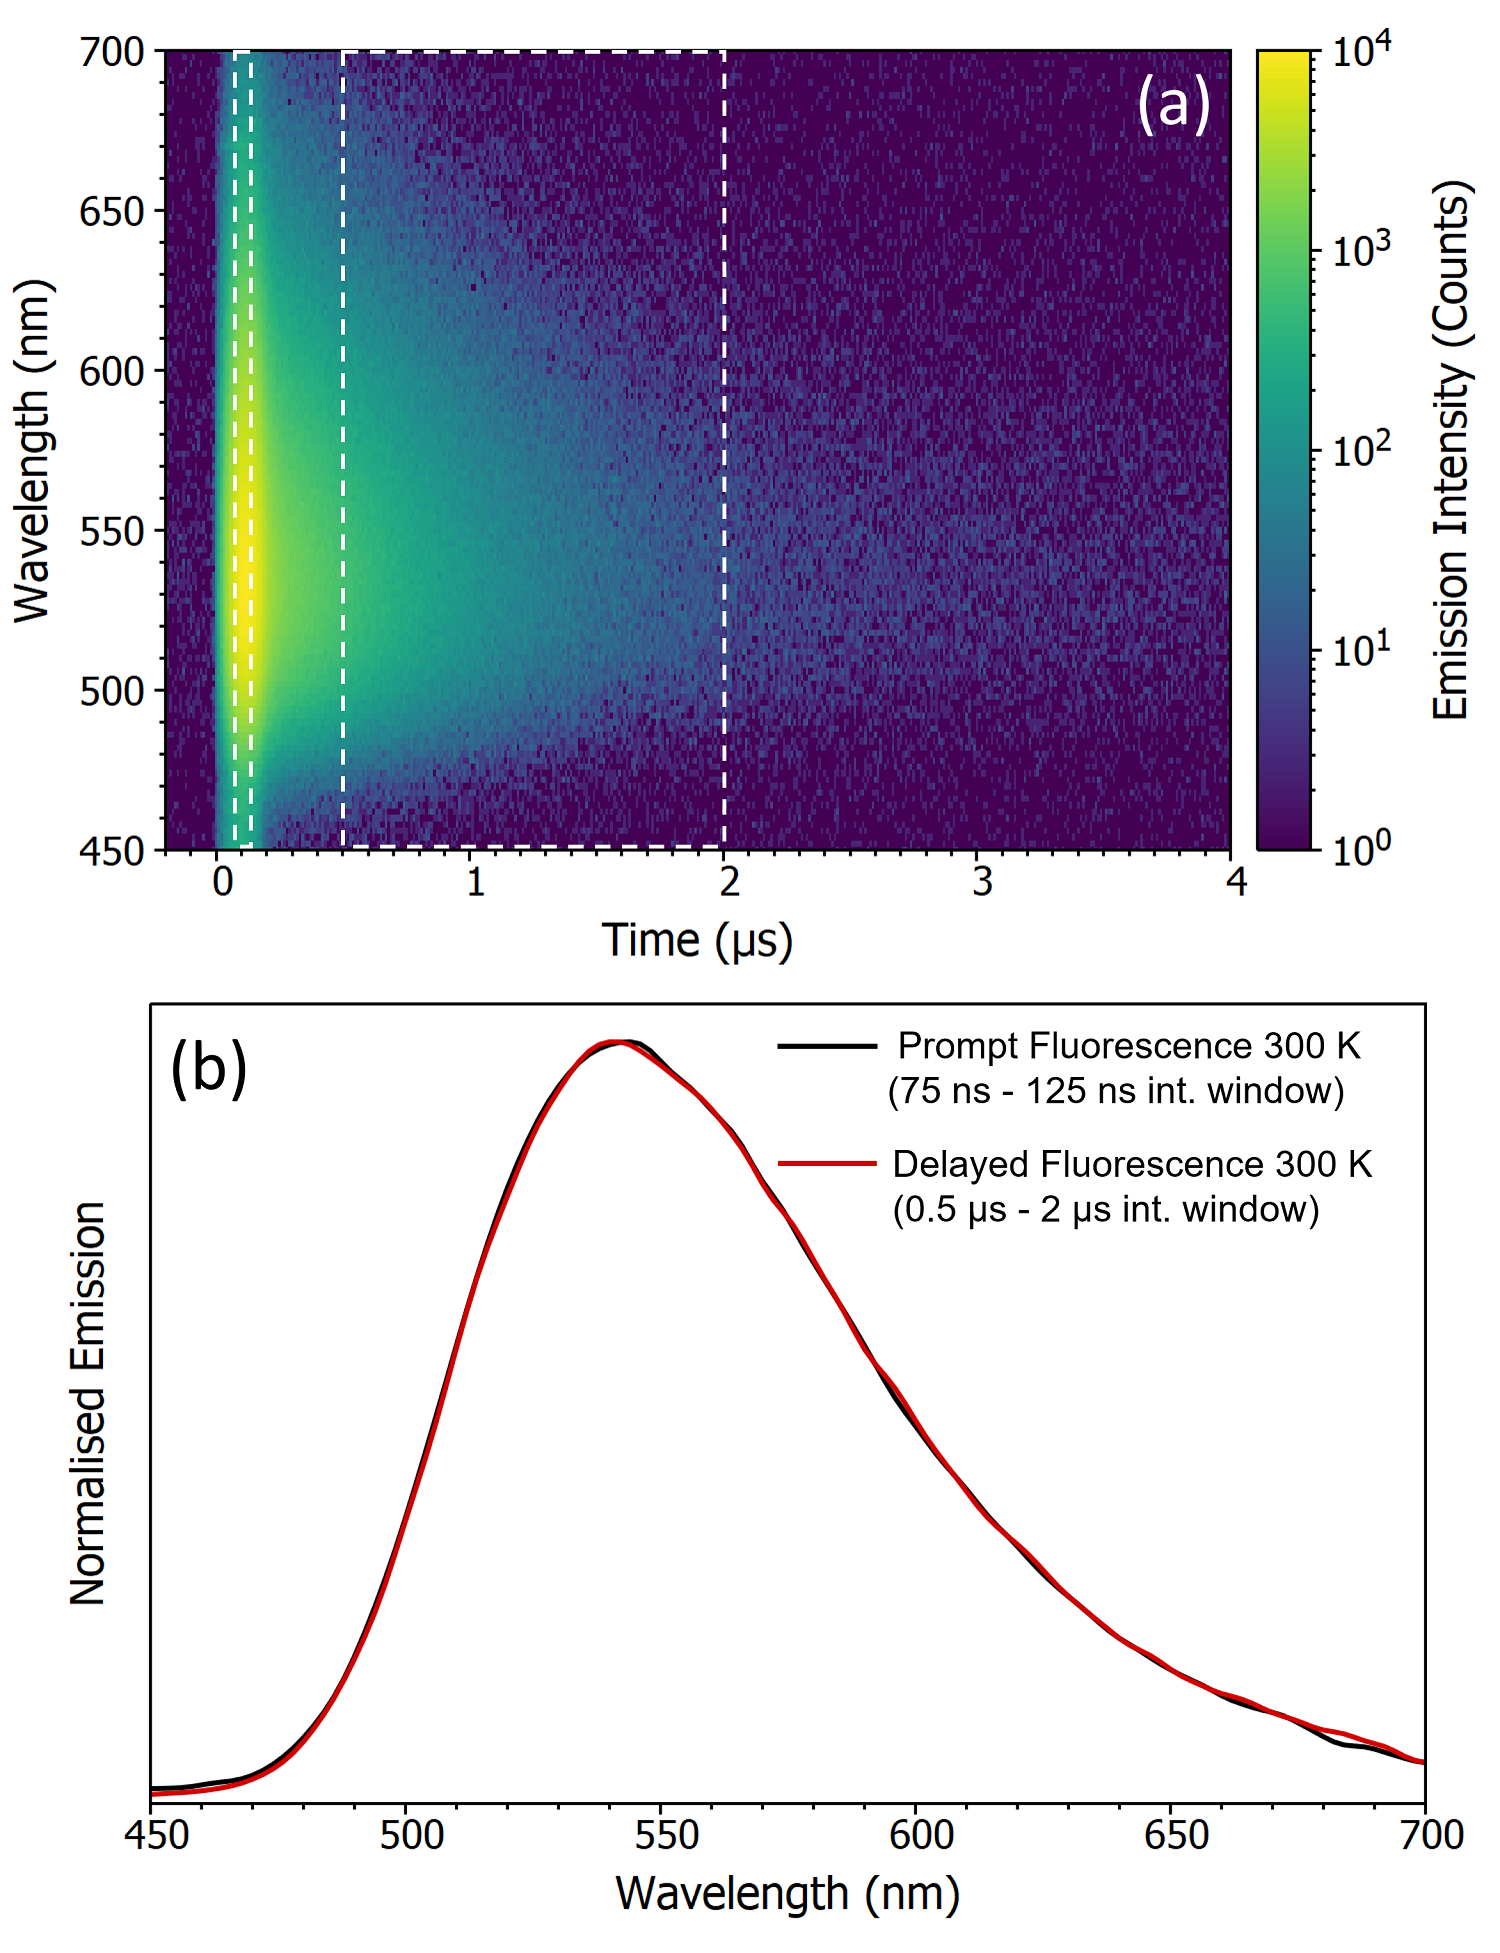 comparison of prompt and delayed fluorescence spectra